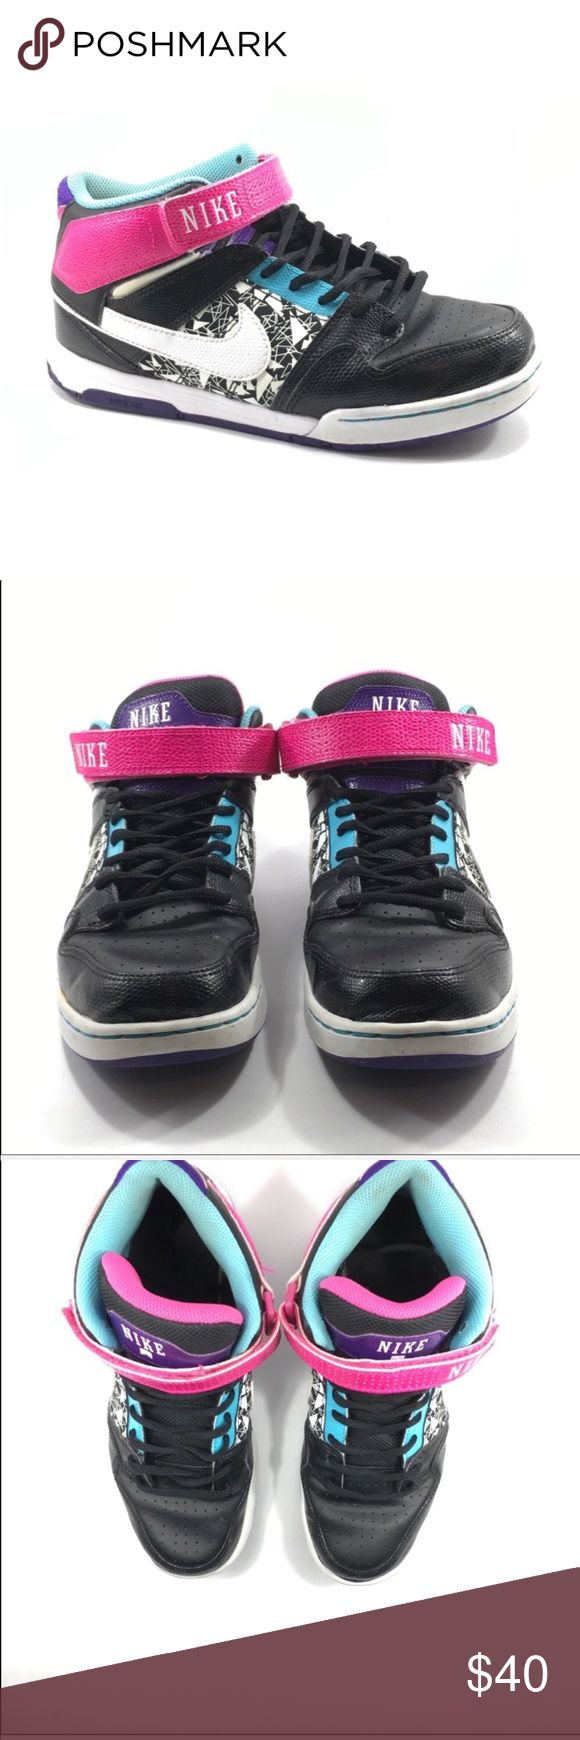 Nike Women's Air Morgan Mid 2 (size 8.5) *Mid-top shoe. * Suede and leather upper. * Cupsole construction. * Padded tongue and collar. * hook and loop fastener strap. * Purple Nike Swoosh. * Combo drop-in midsole and sock-liner. * Perforated toe. * Injected Pylon midsole. * Nike rubber outsole. * Imported. Nike Shoes Athletic Shoes